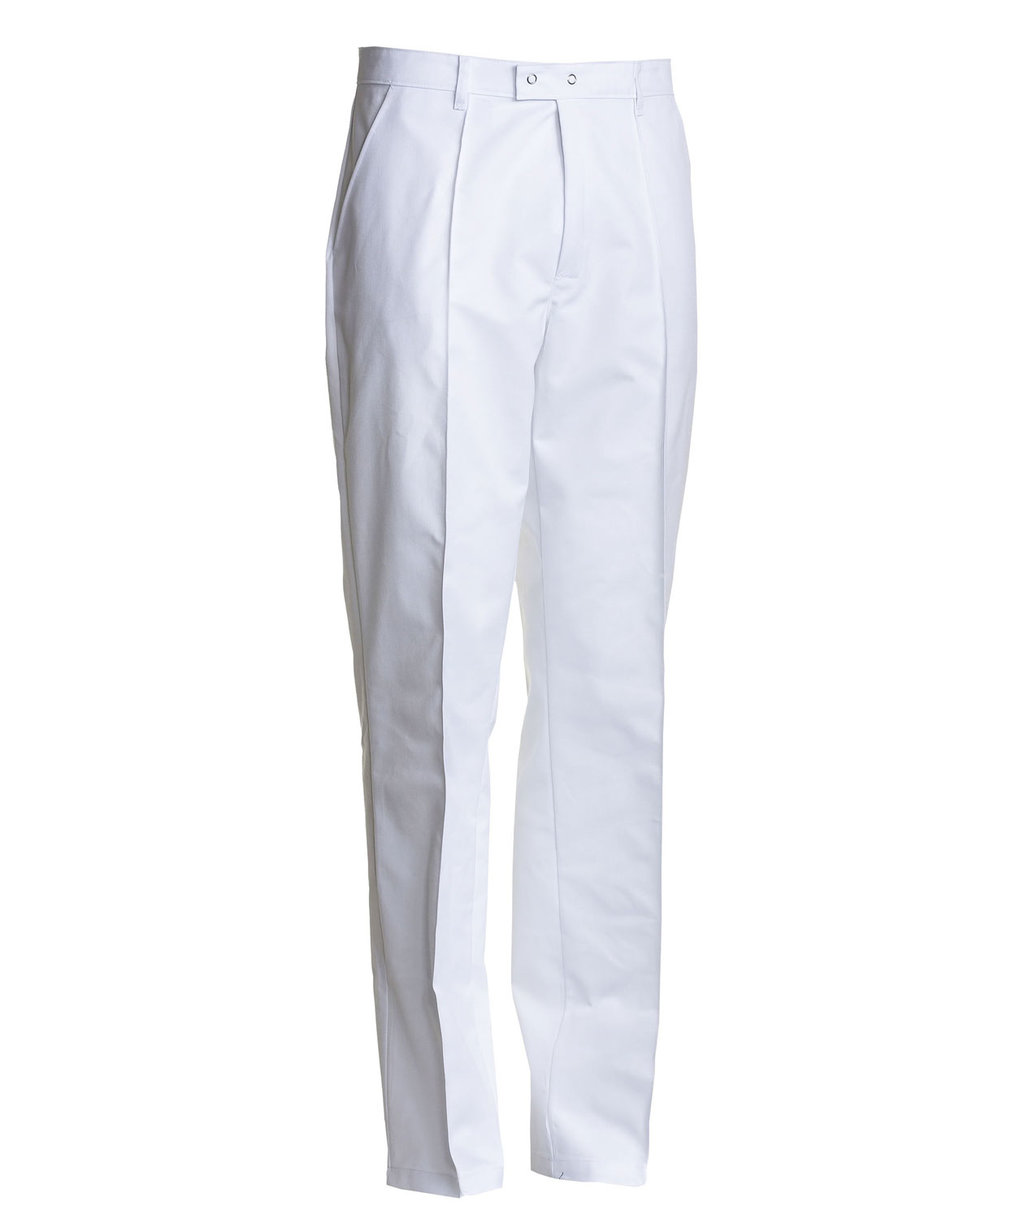 Nybo Workwear Club Classic trousers, extra long, White